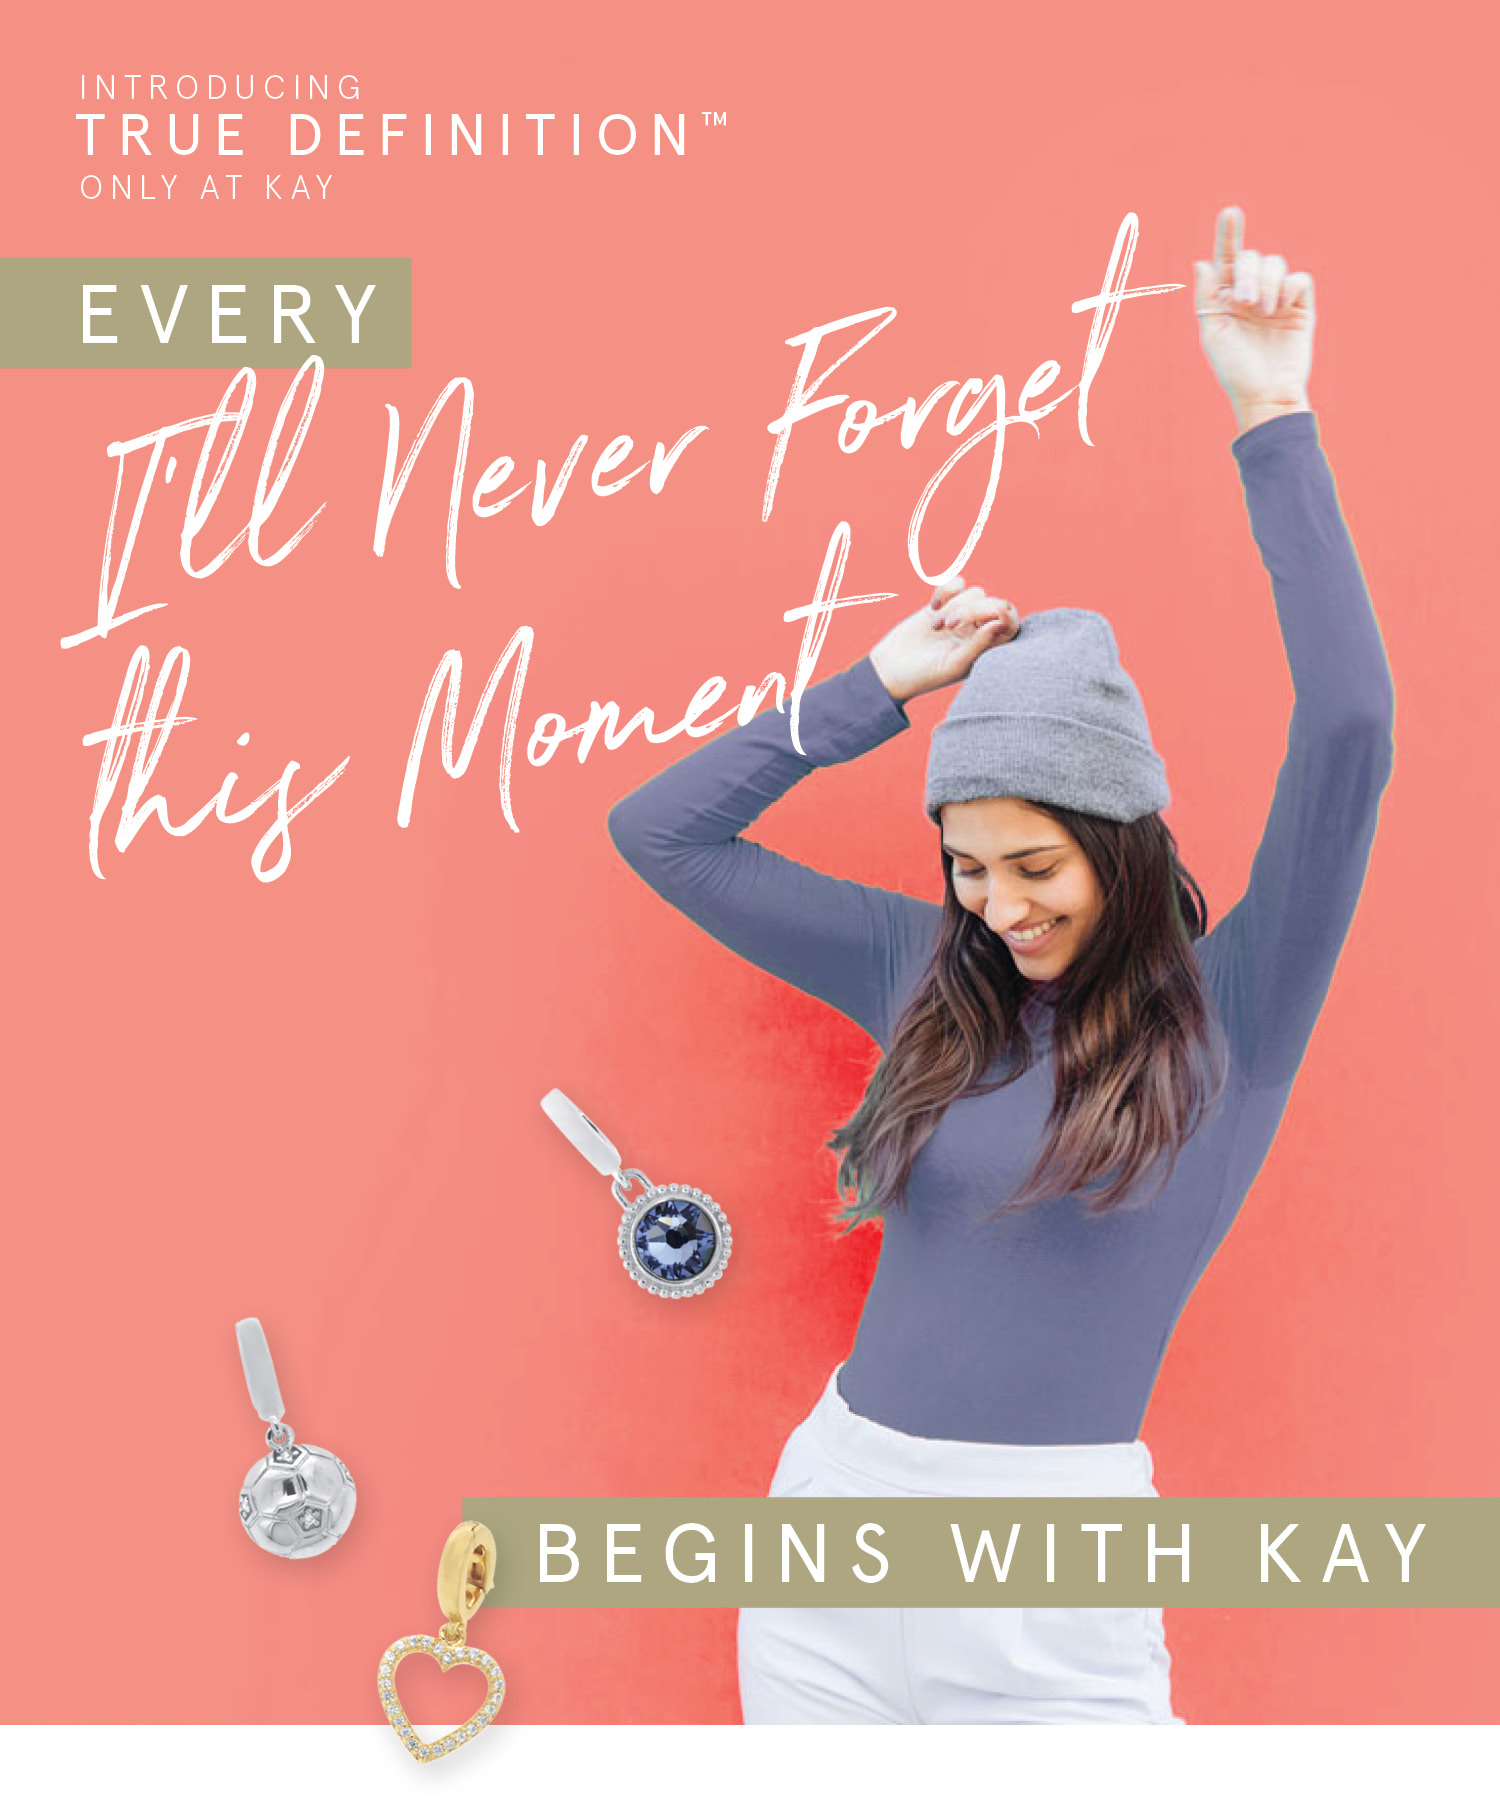 Happy woman and True Definition charms from KAY. What's your defining moment?